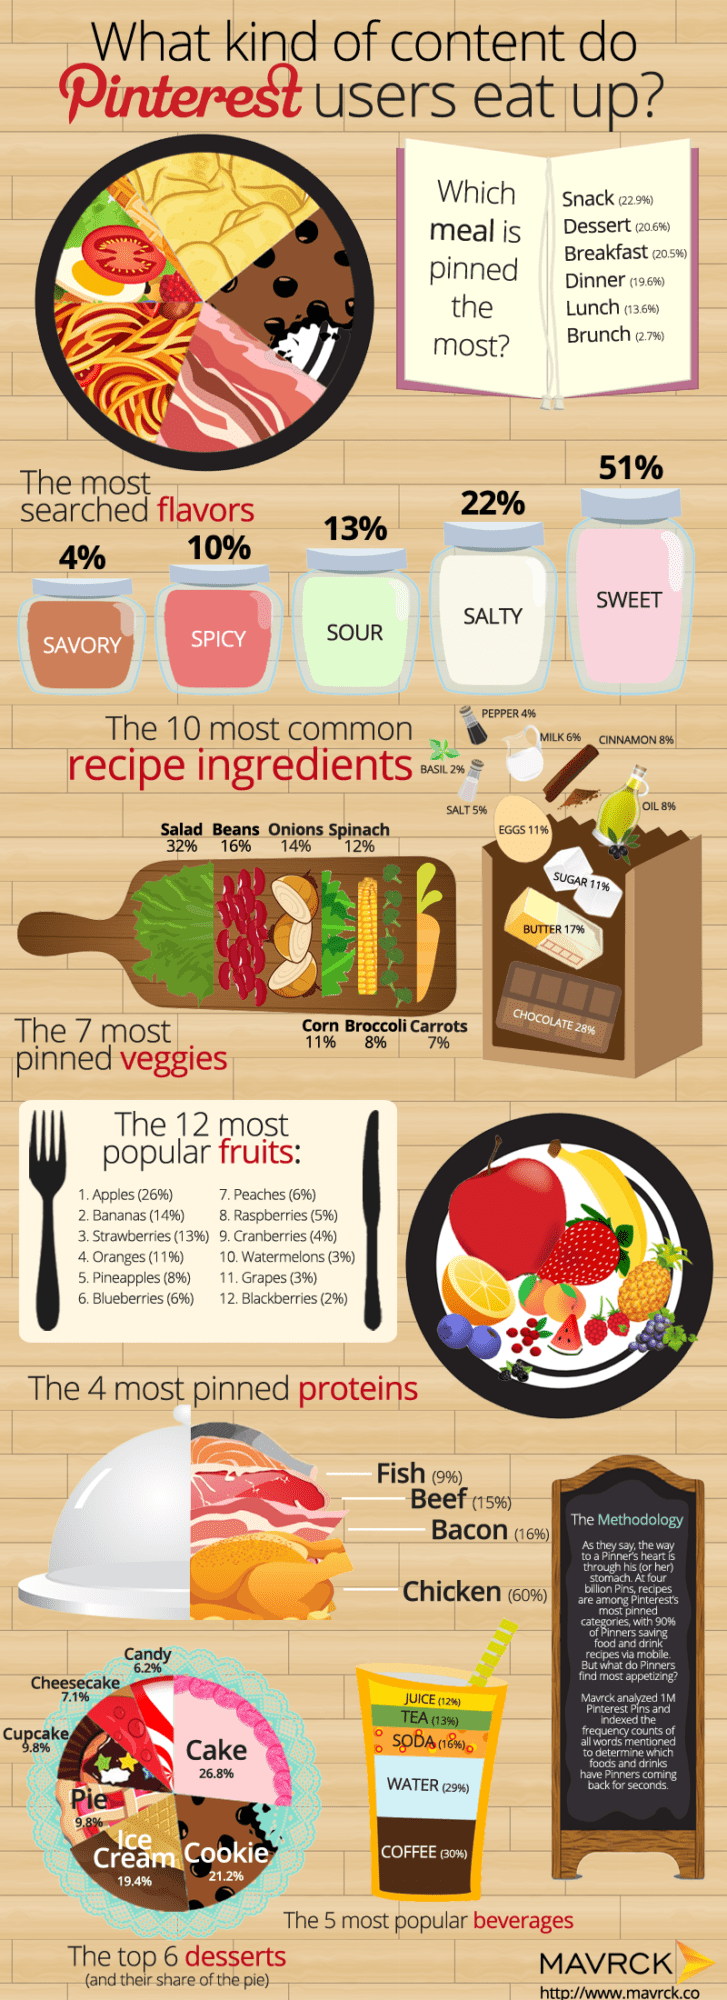 Pinterest Food Infographic (1)